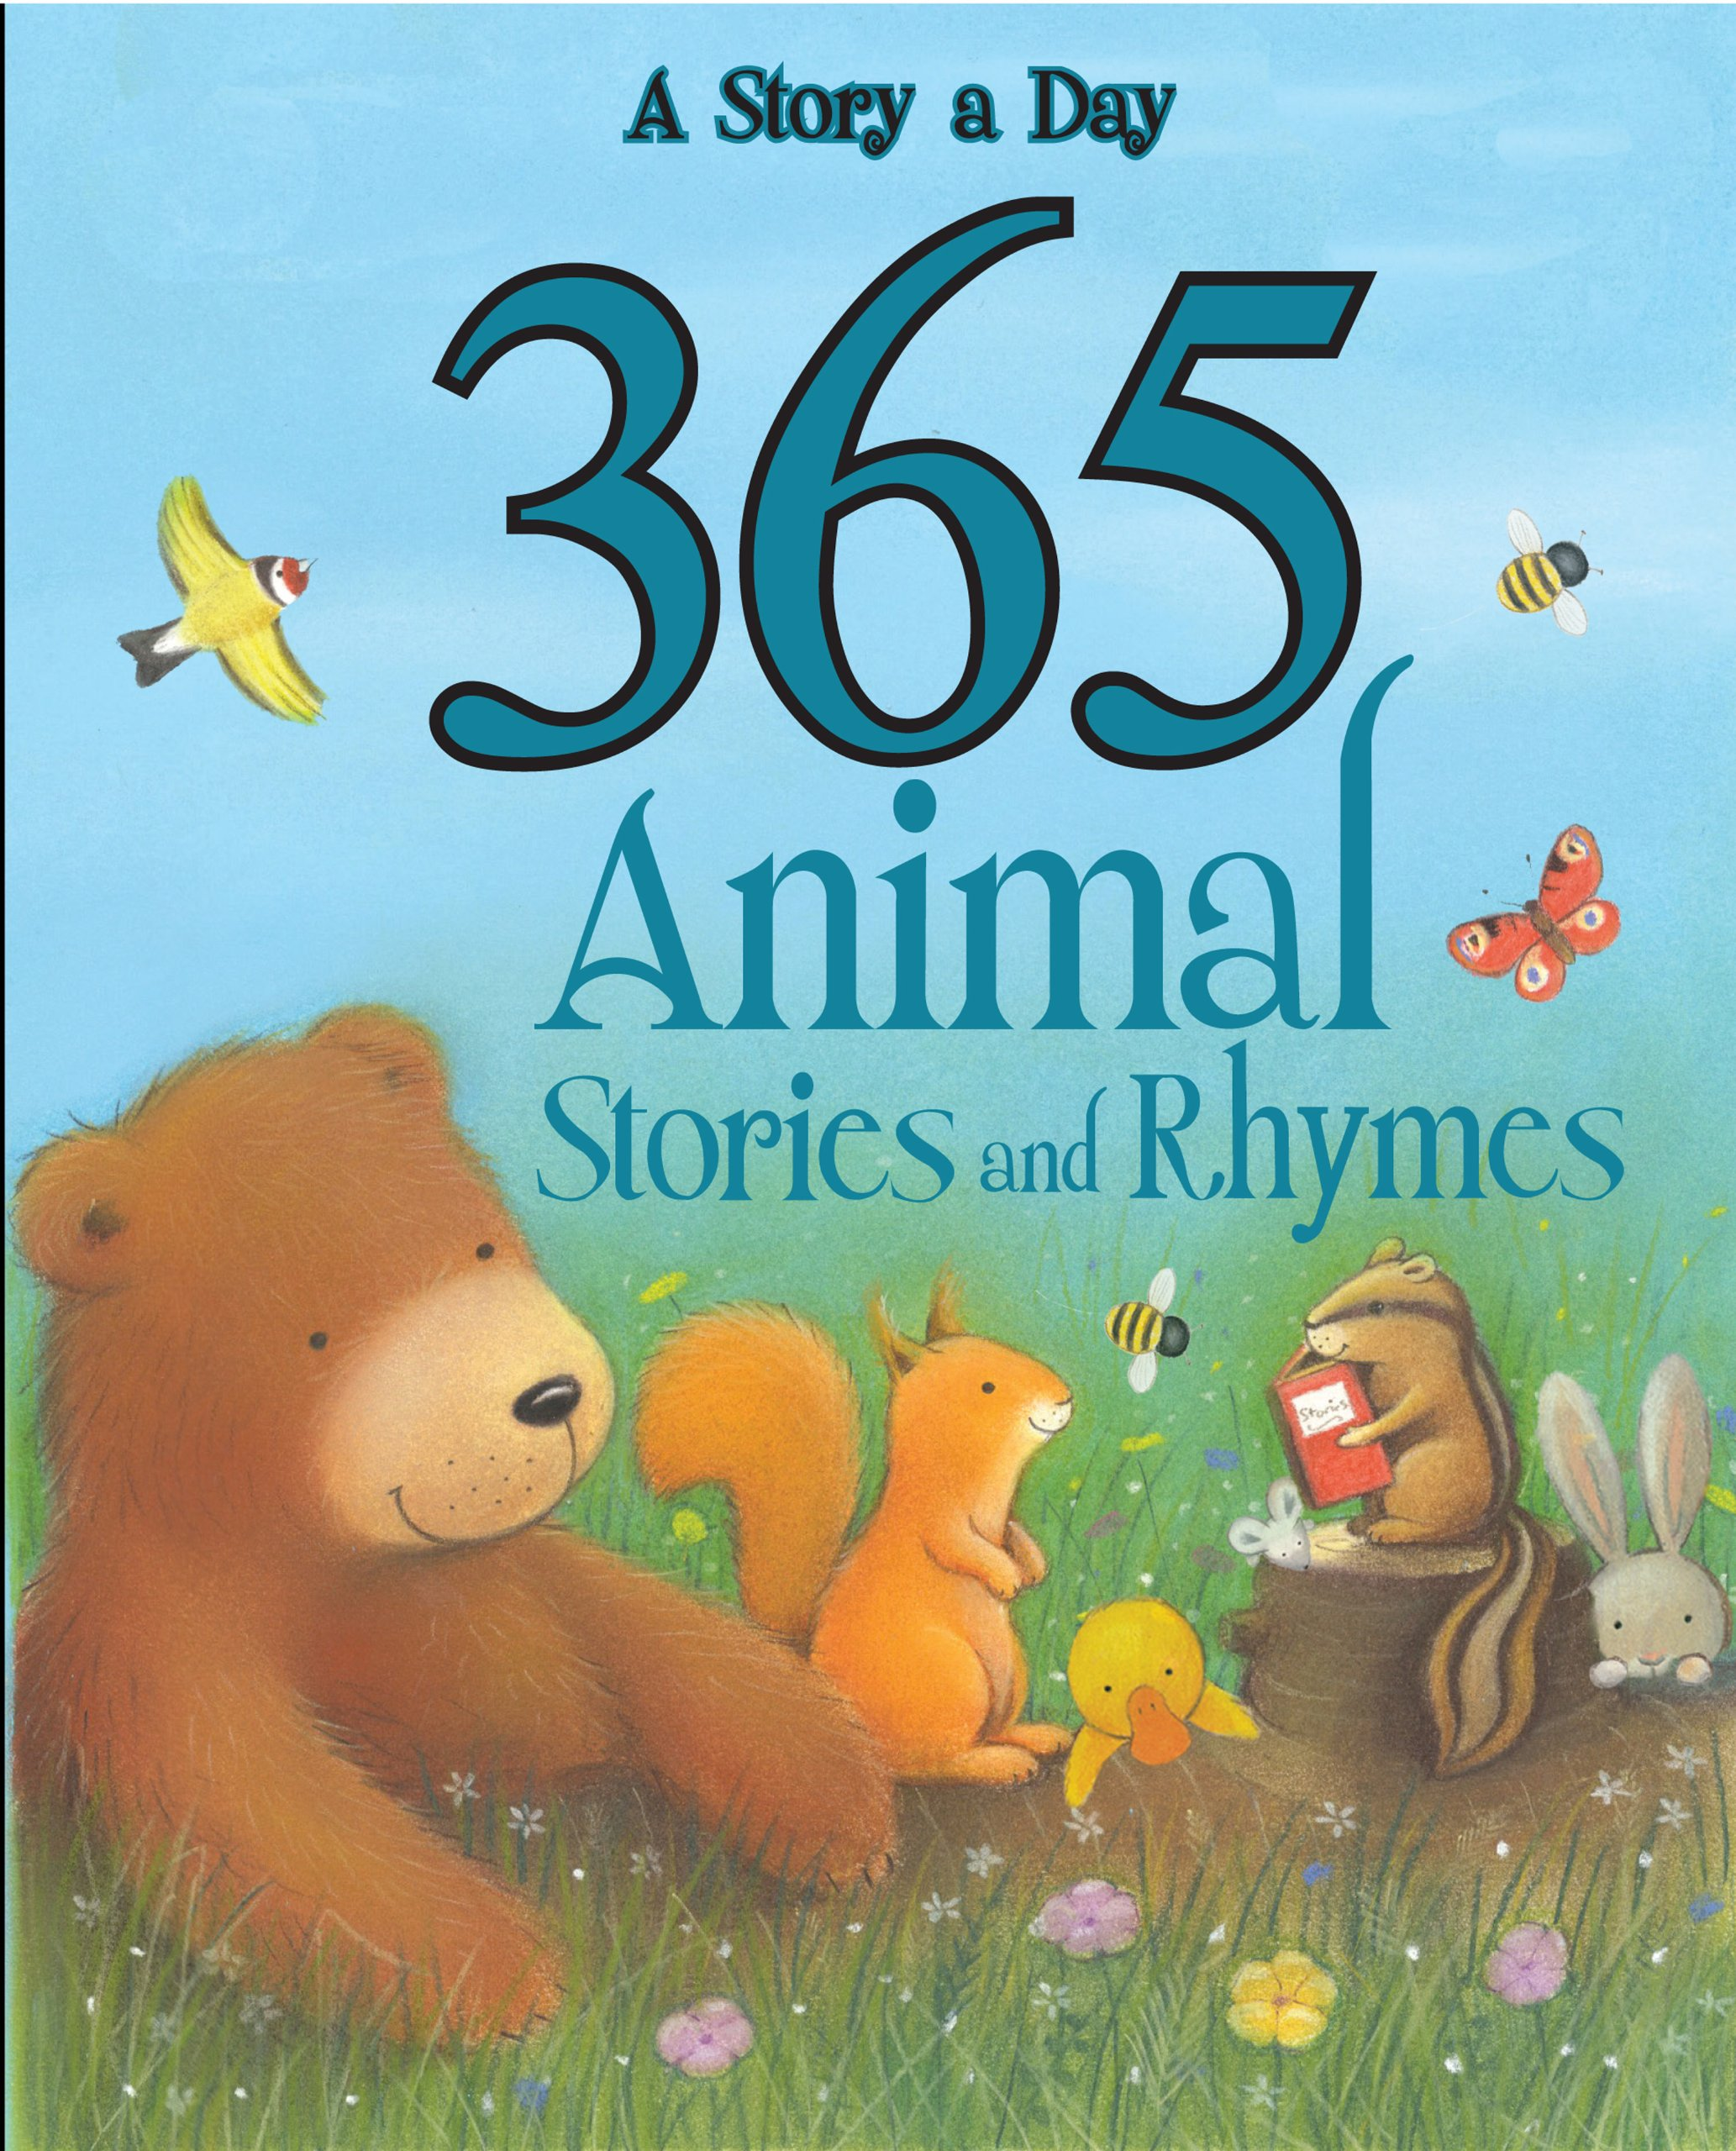 Uncategorized Animal Stories 365 animal stories and rhymes parragon books alicia padron 9781445438535 amazon com books